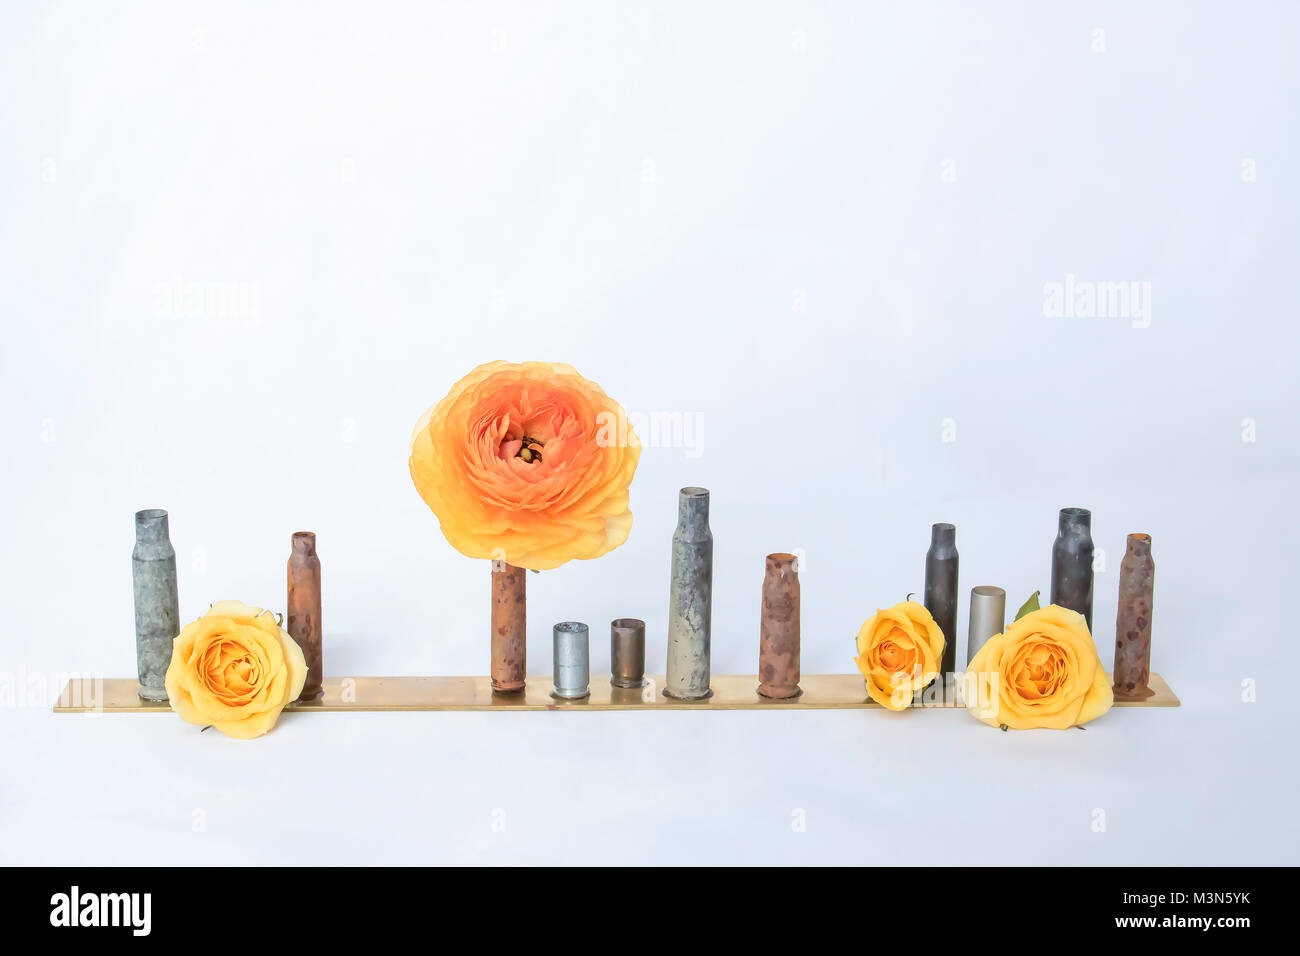 Row of Antique Rusty Bullet Casings or Shells Hold Single Ranunculus Flower and Three Roses on White Background - Stock Image